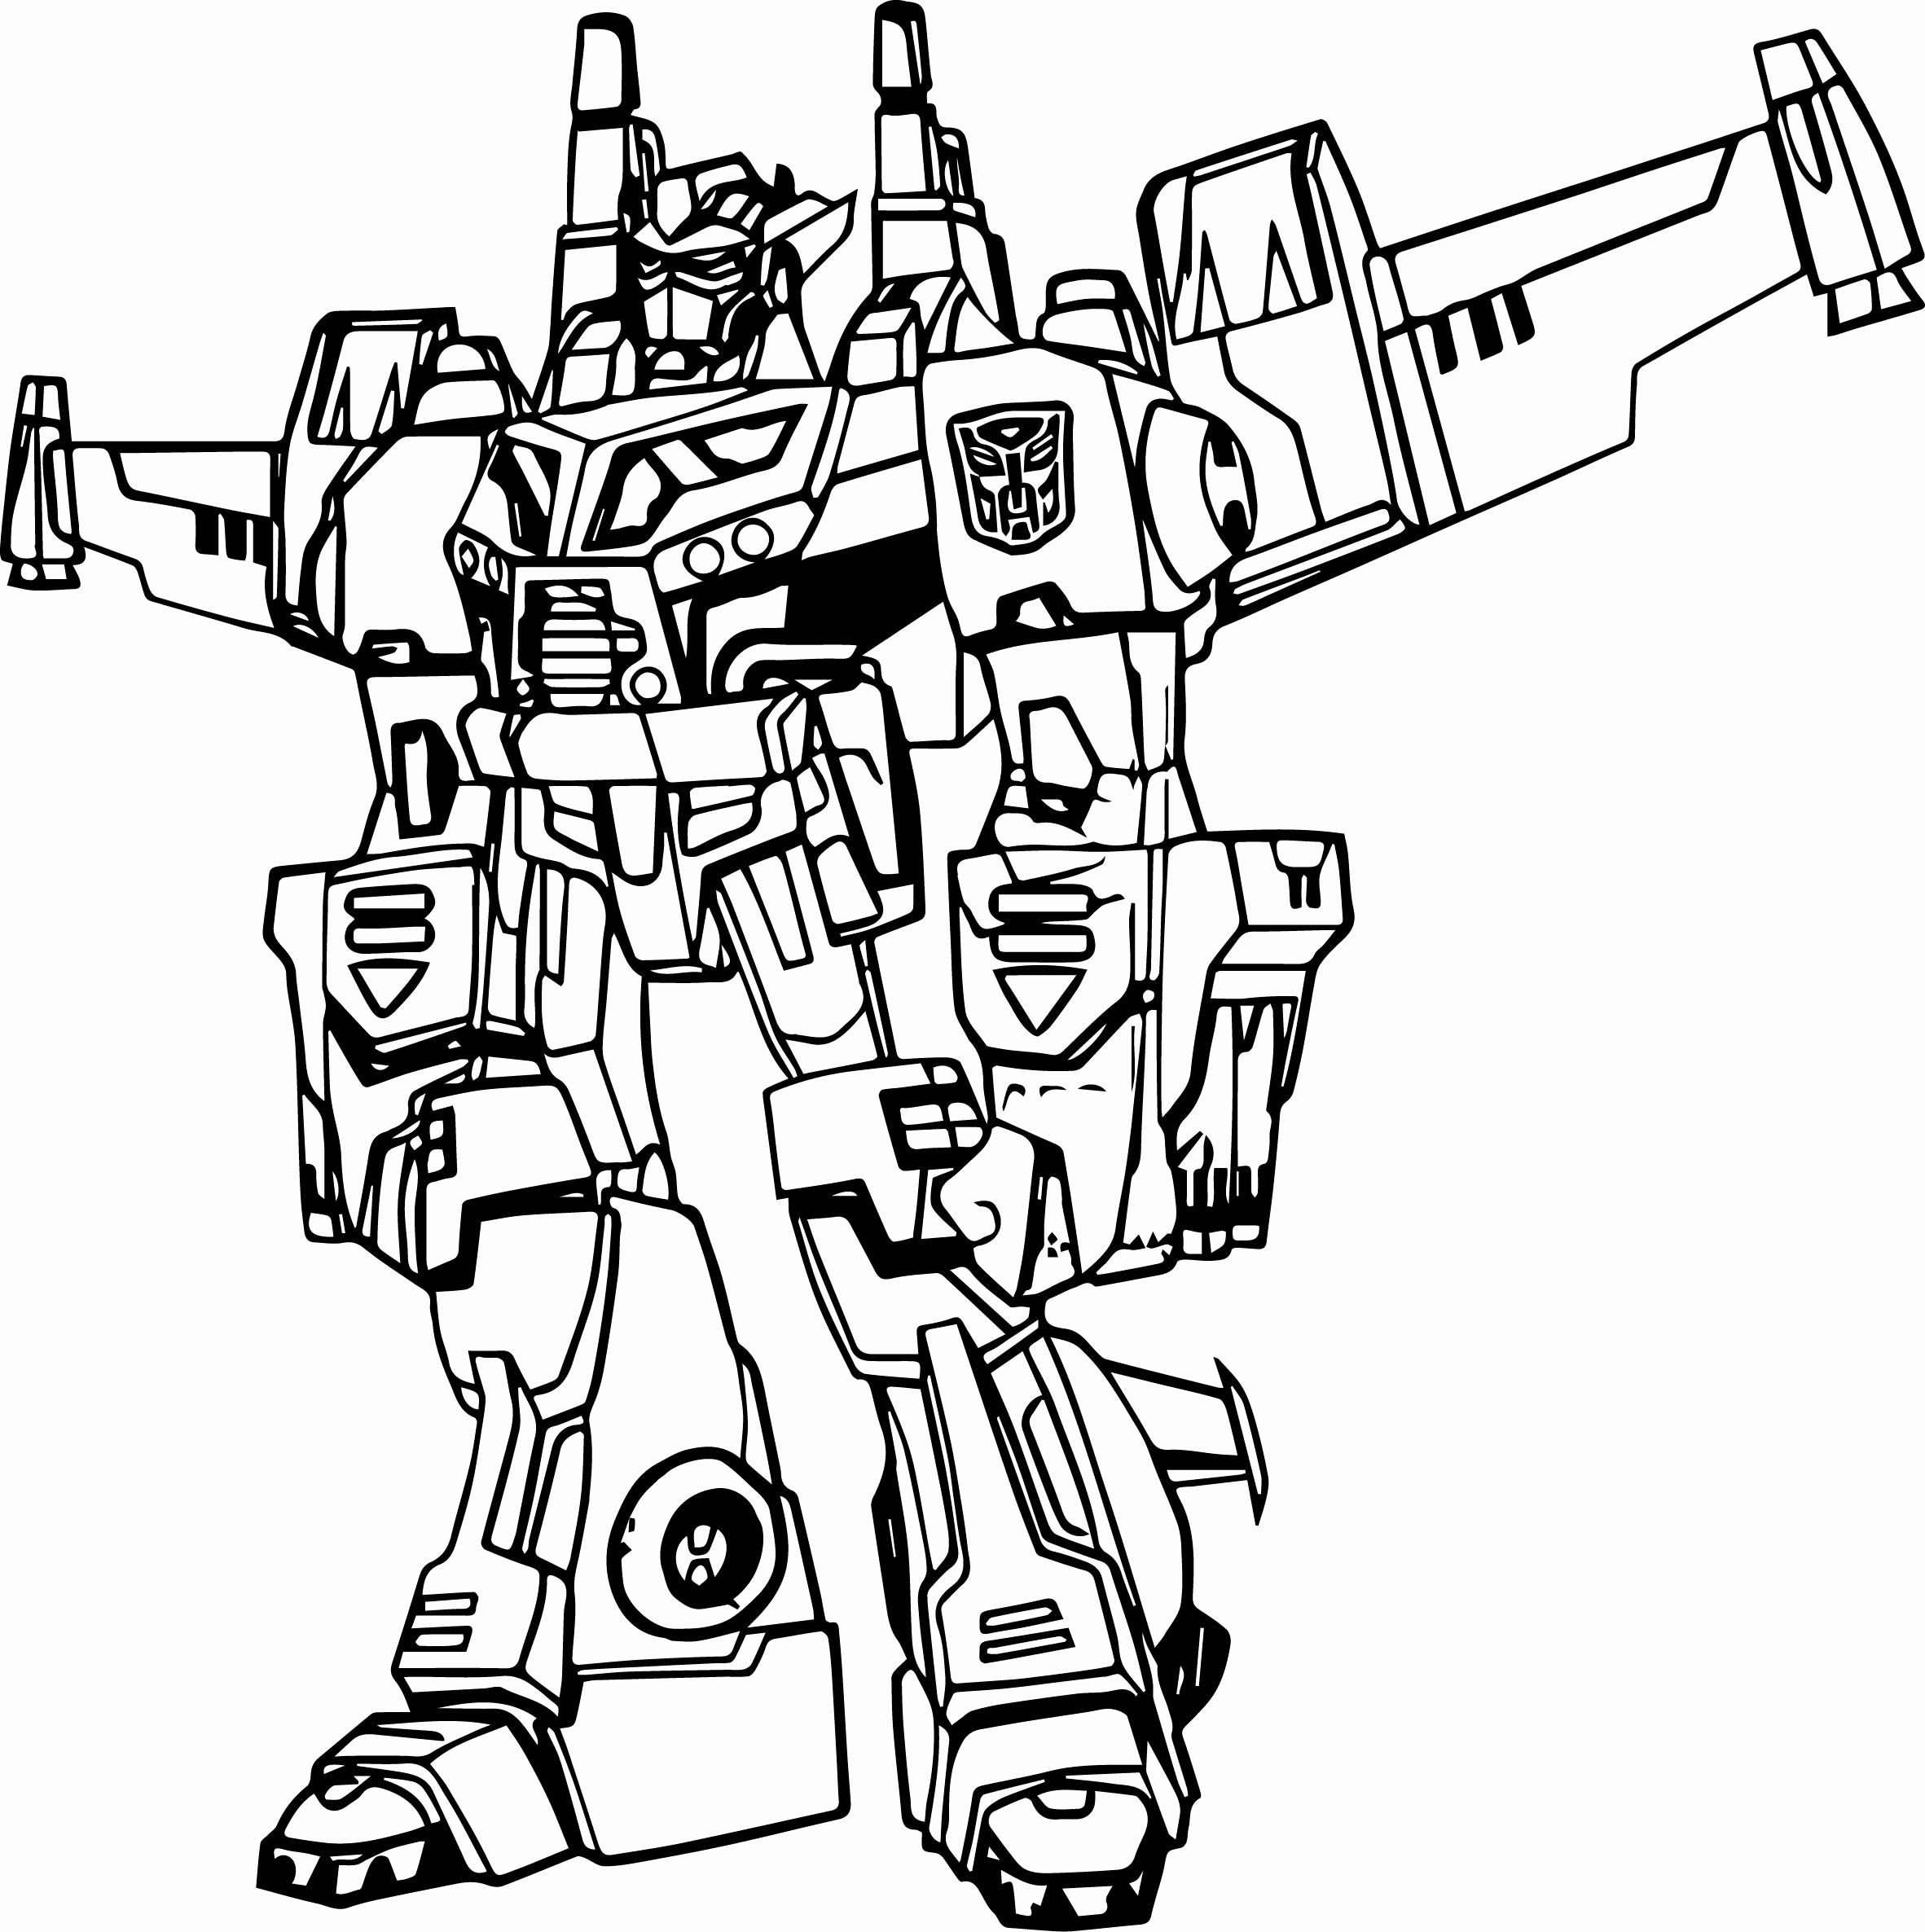 Optimus Prime Coloring Page Inspirational Transformers Optimus Prime Coloring Page Transformers Coloring Pages Bee Coloring Pages Coloring Pages For Boys